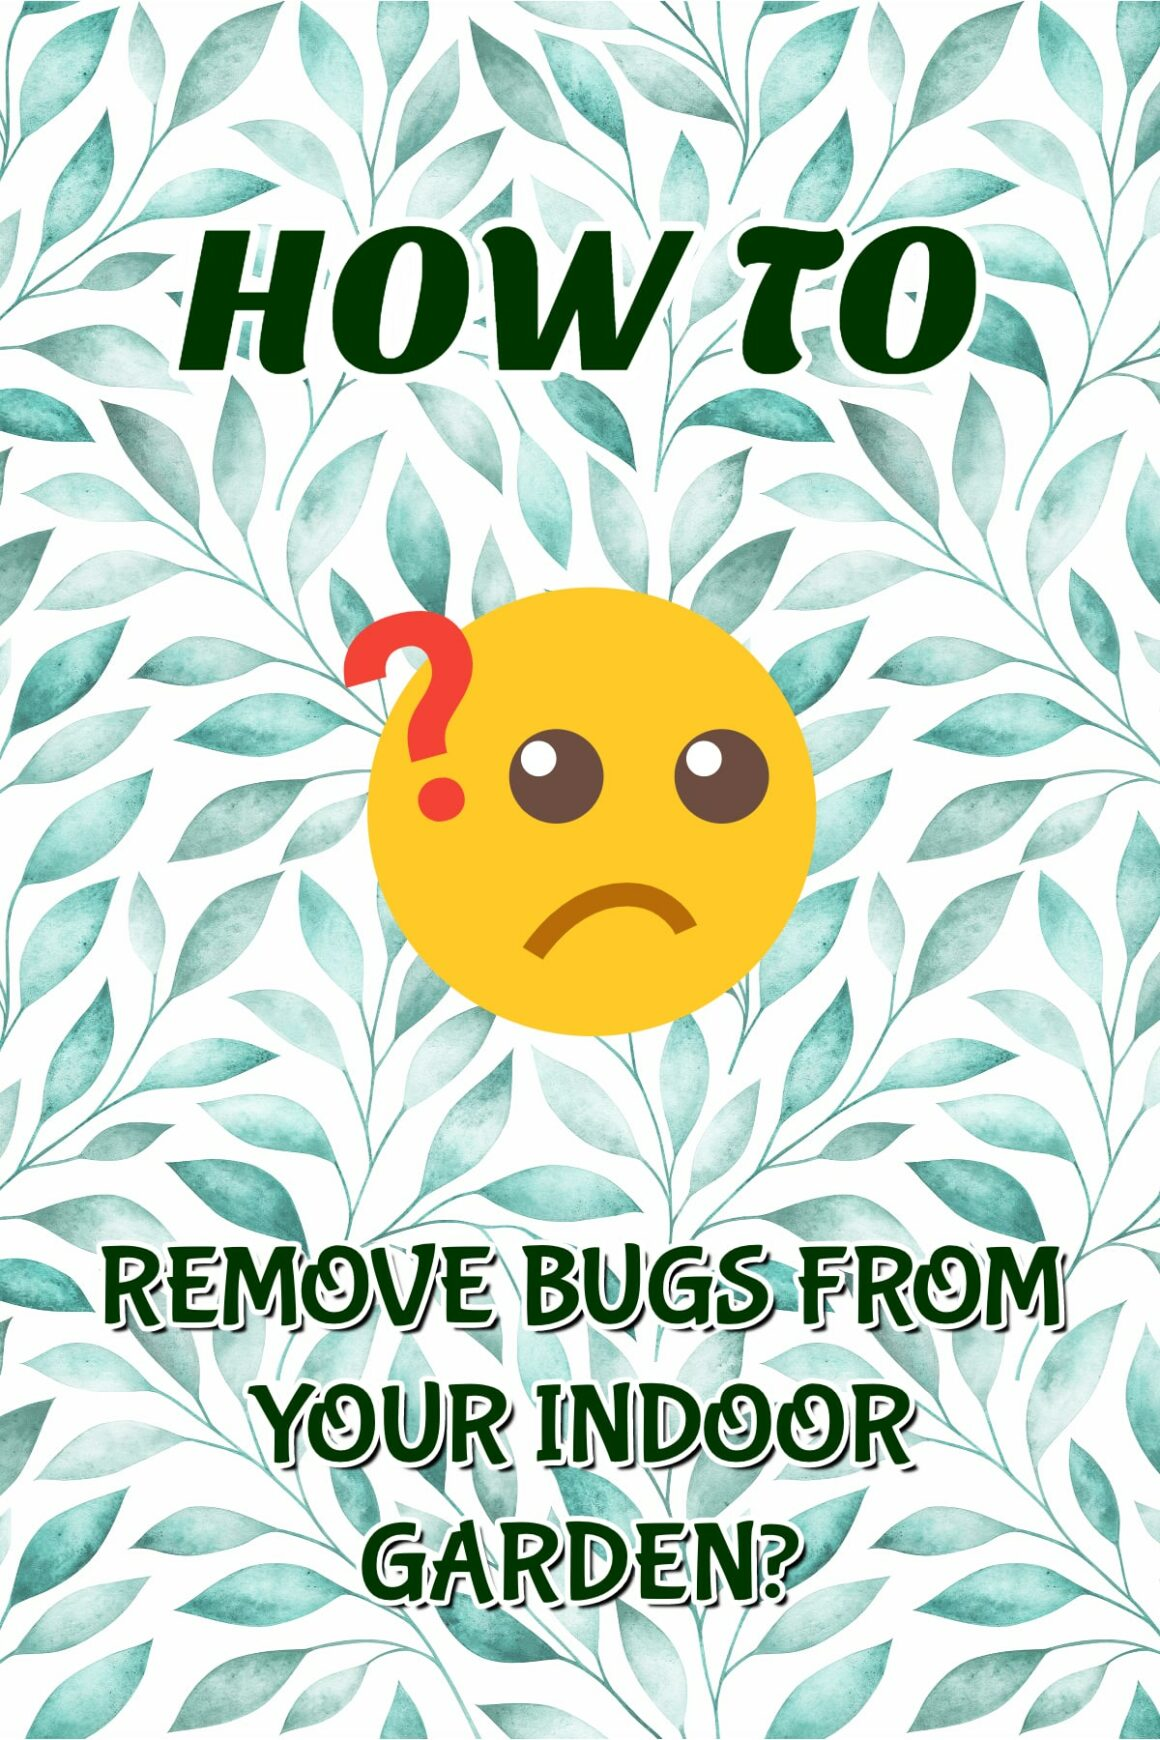 Removing Bugs From Your Indoor Garden